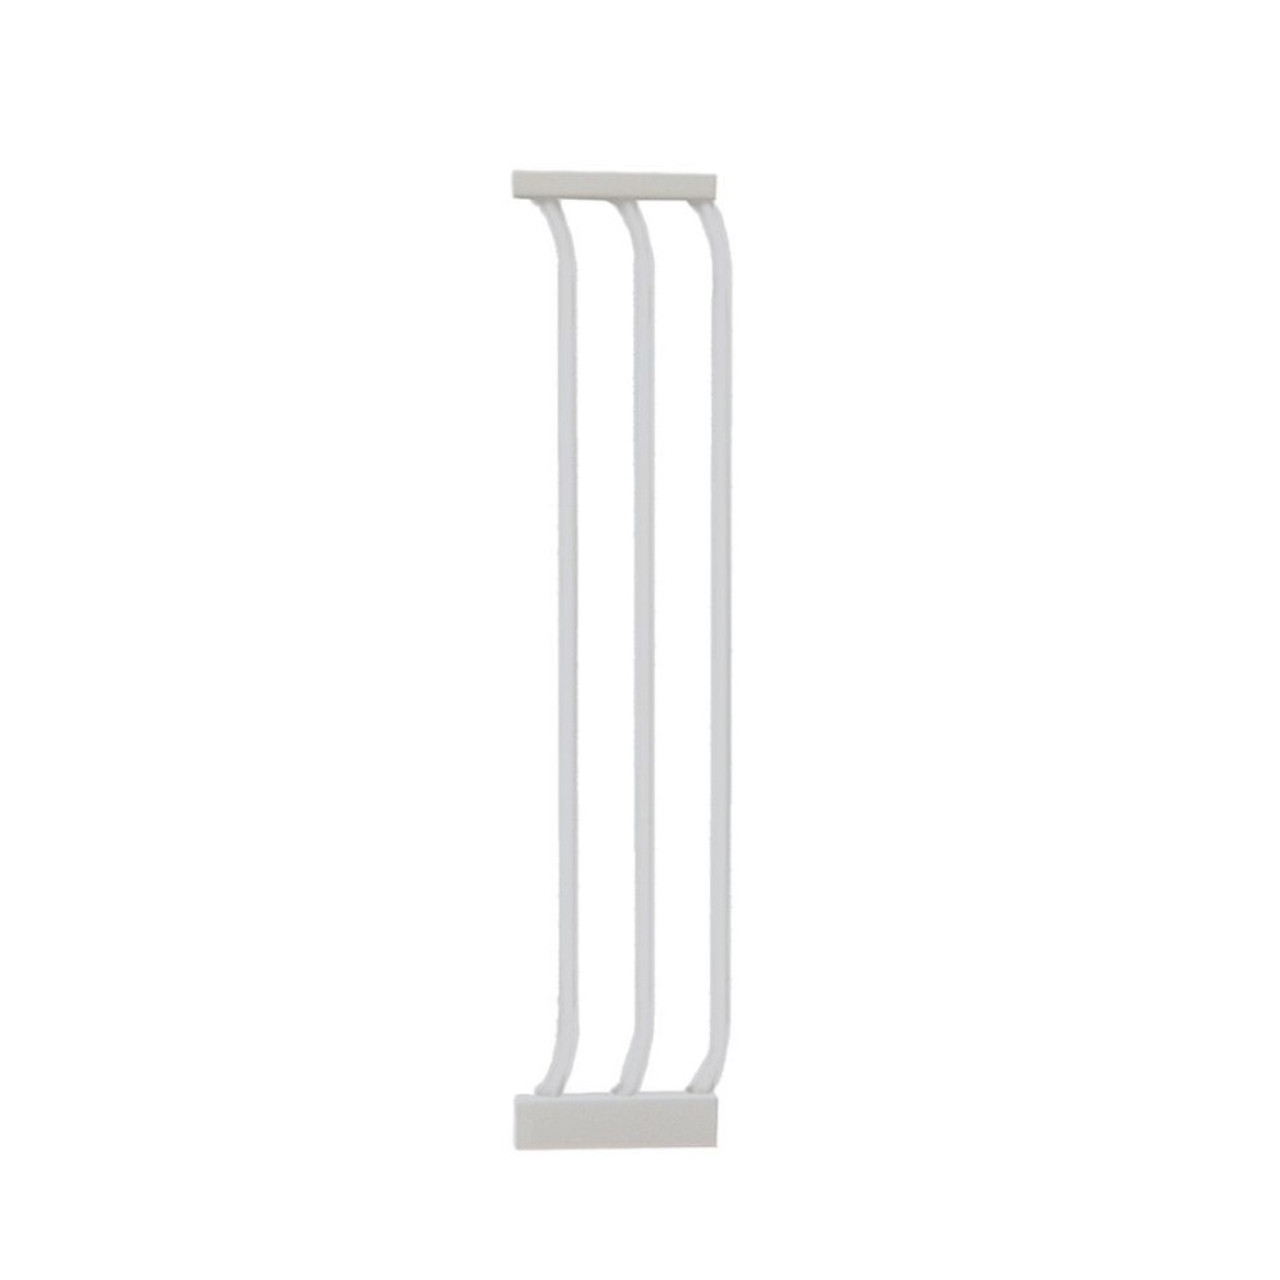 Dreambaby Chelsea Gate Extension 18cm White